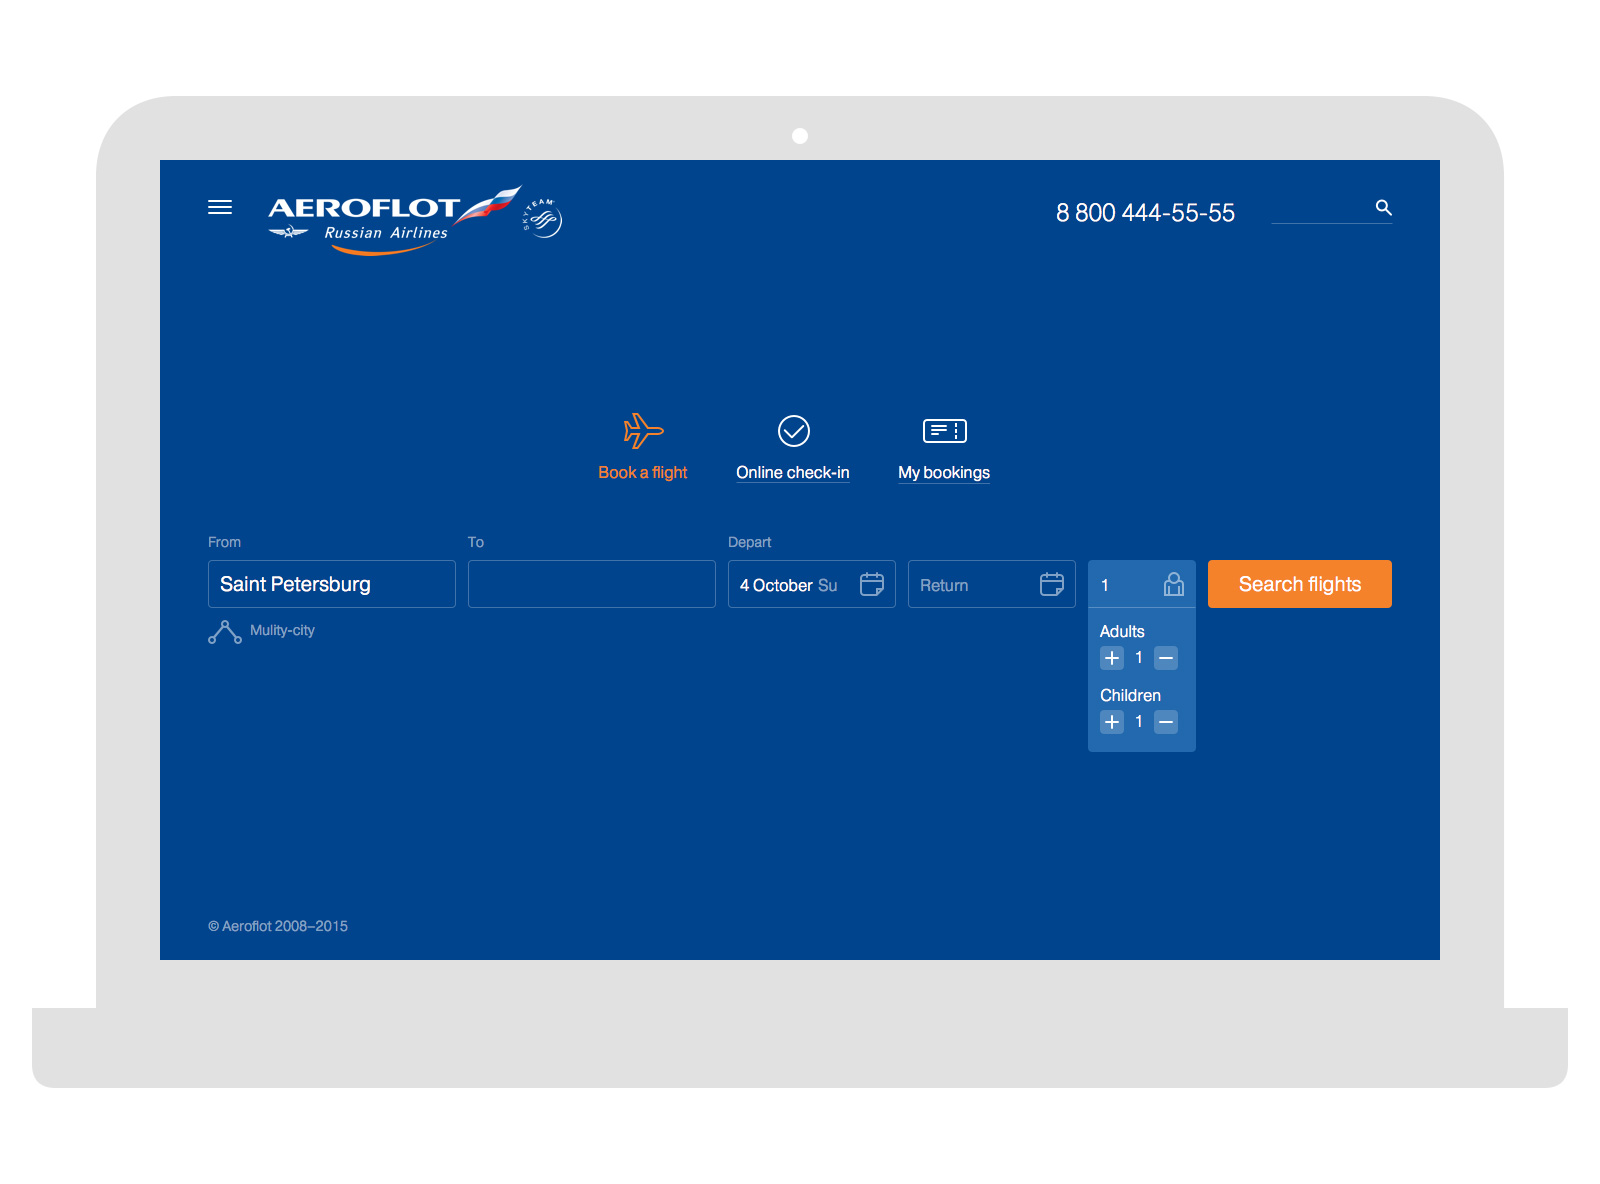 aeroflot russian airlines website